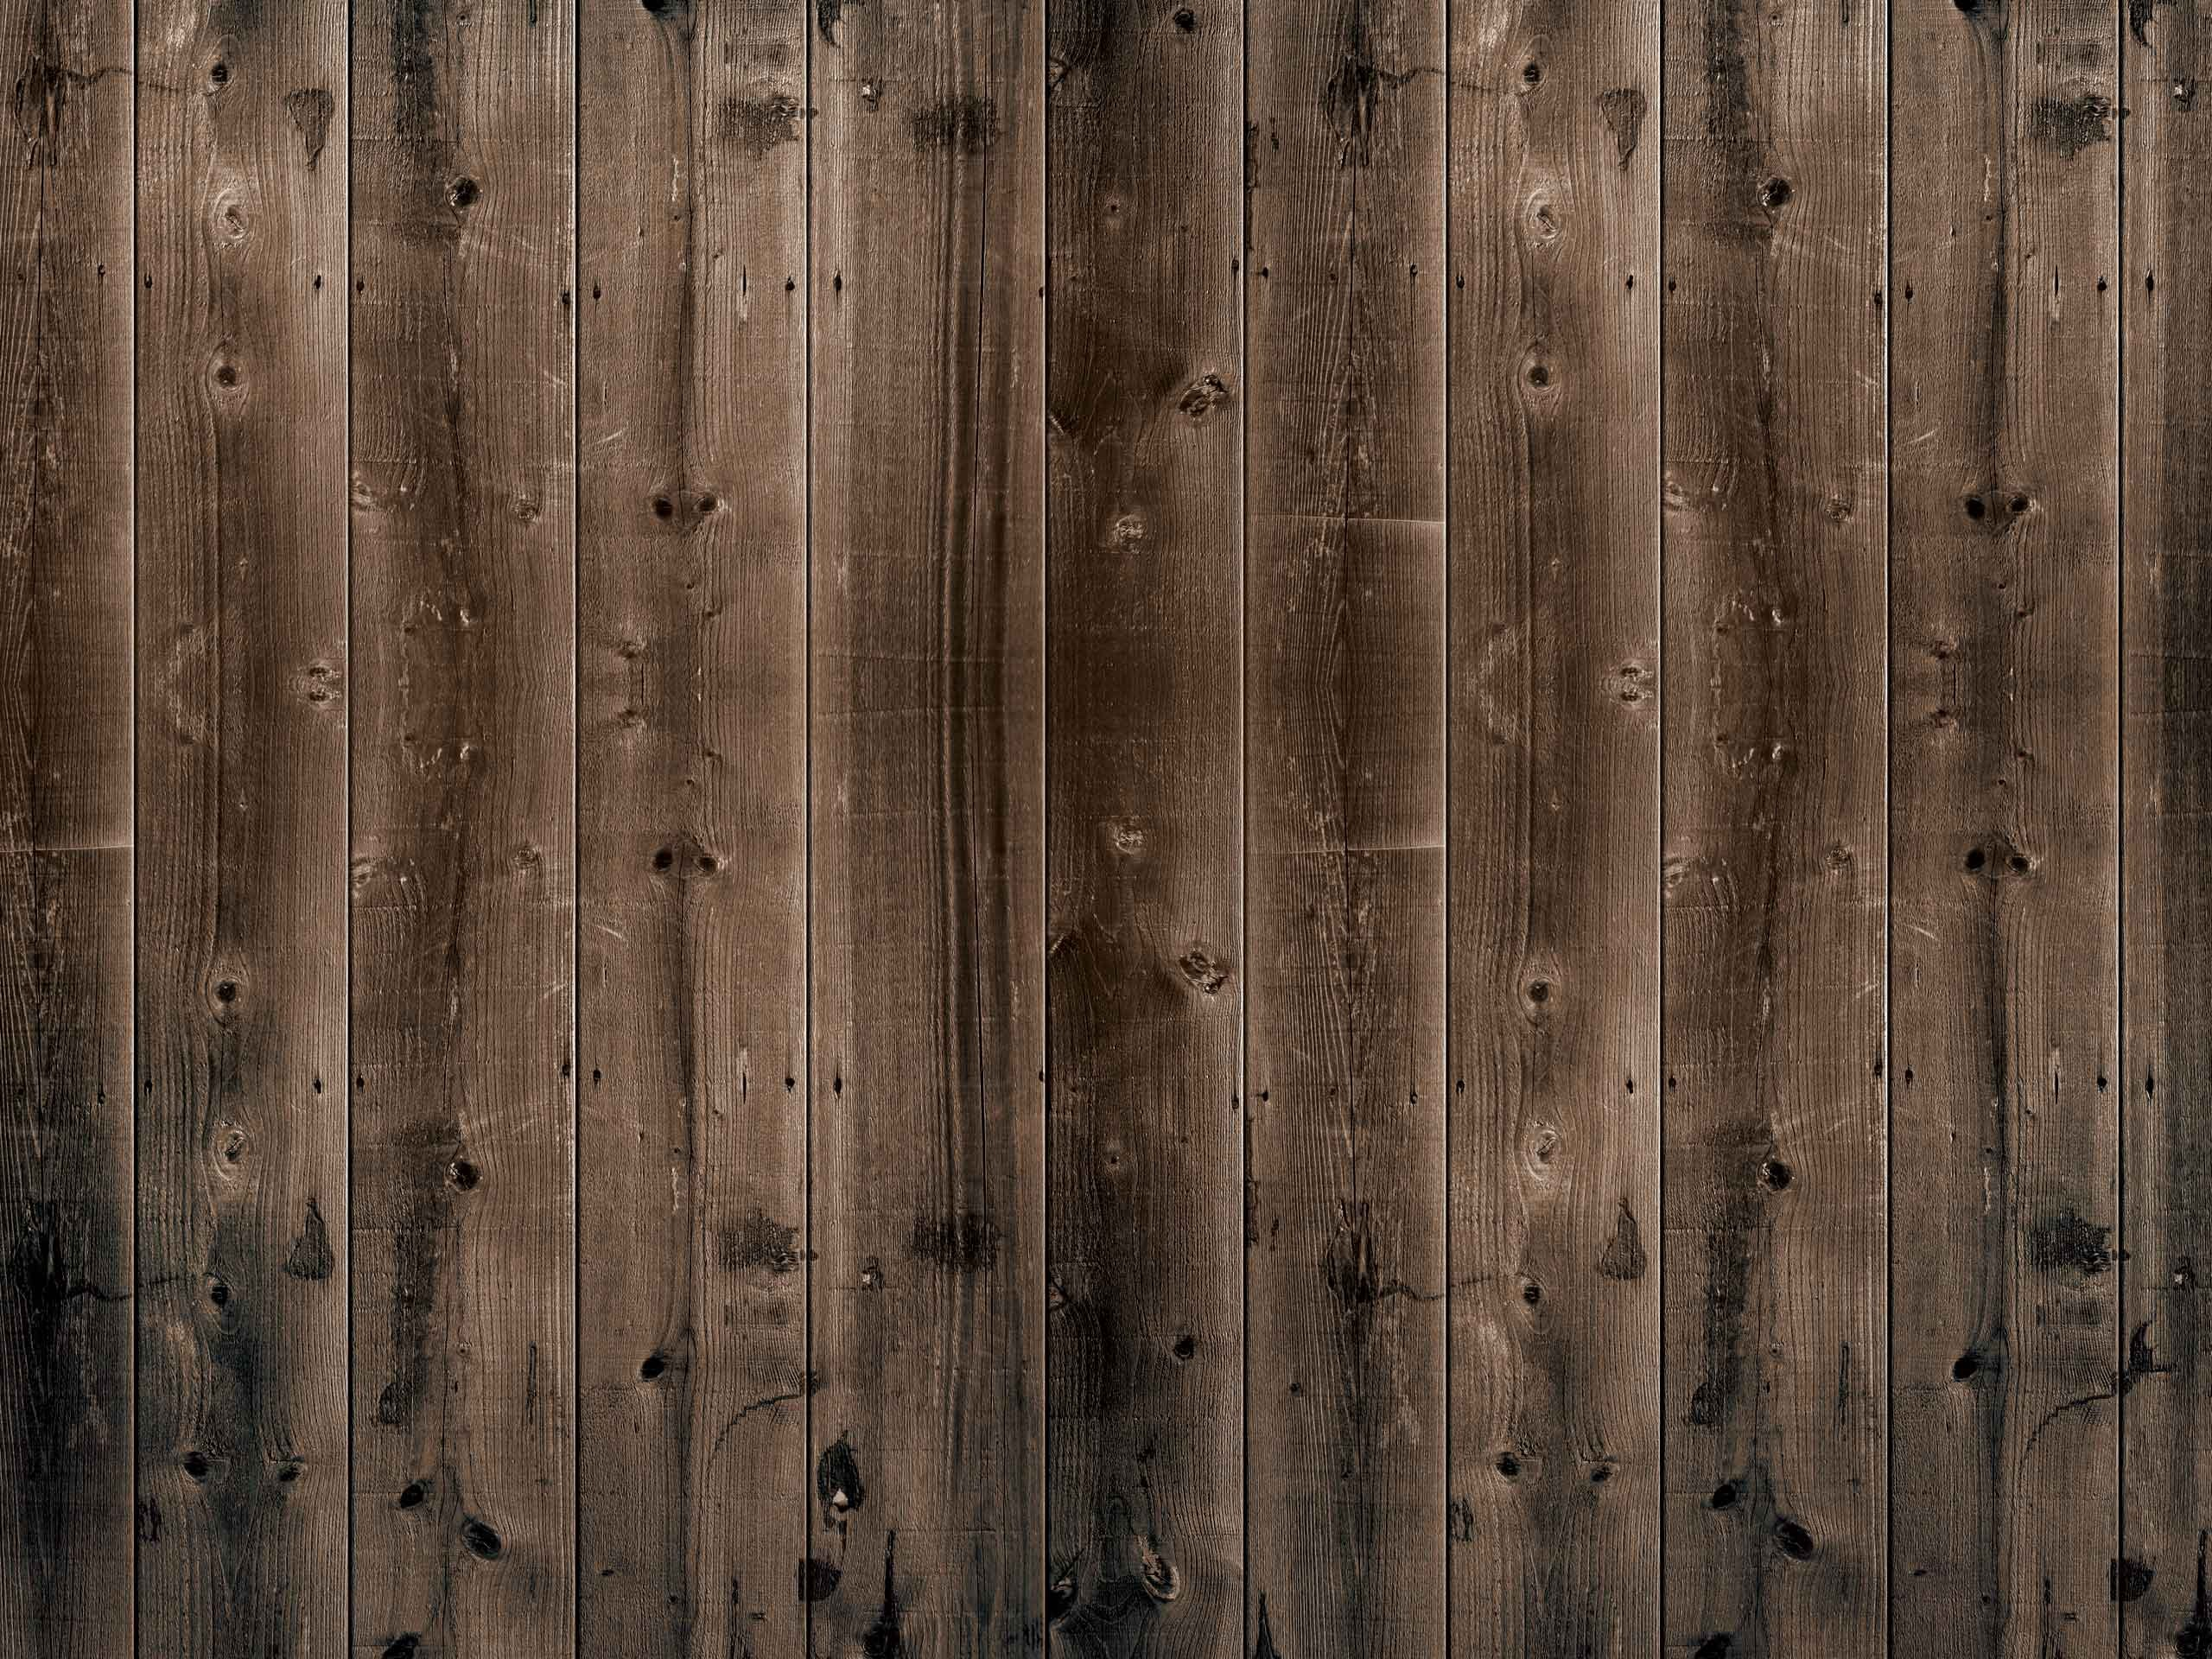 Rustic Wood Background ~ Vintage rustic wood background with lace ·① download free